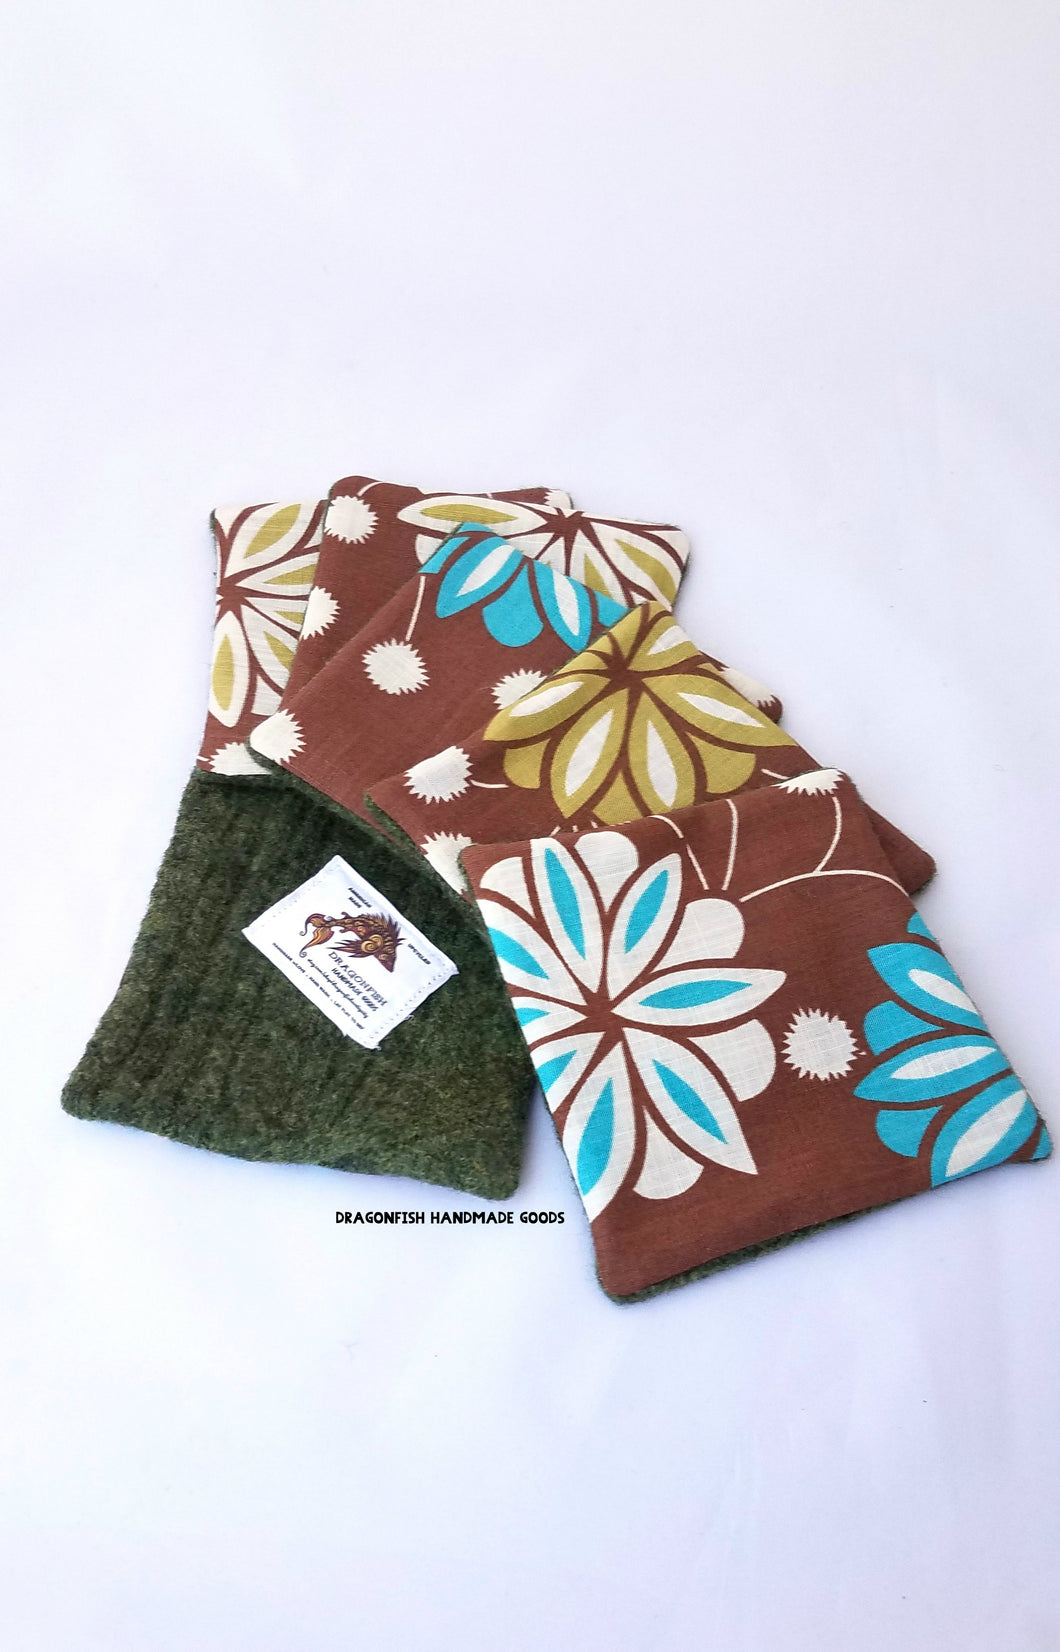 Upcycled felted sweater fabric coasters - Brown with flowers - set of 6